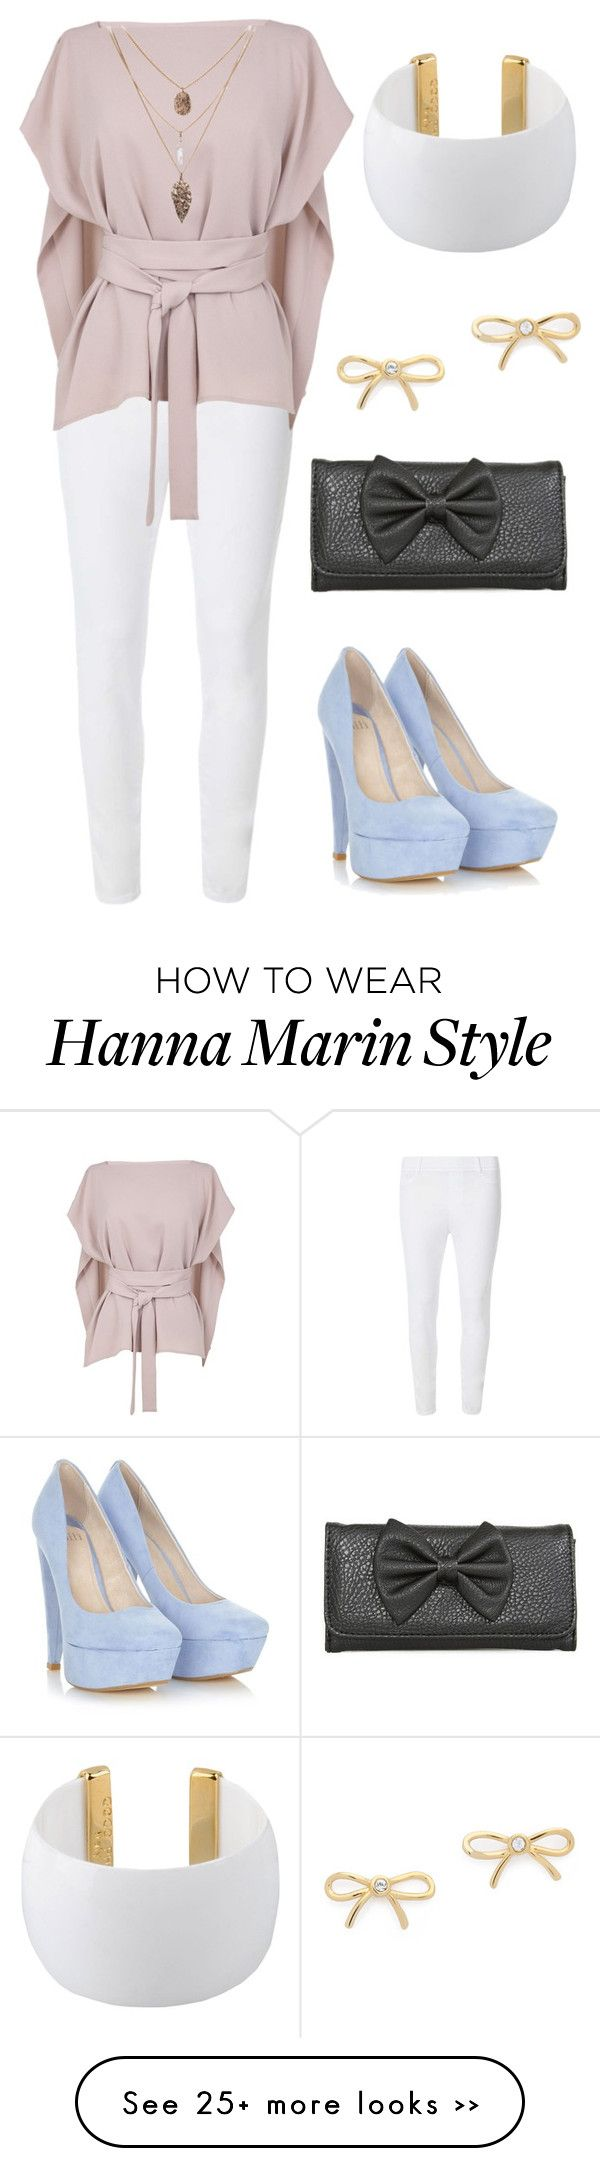 """""""Spencer Hastings / hanna marin"""" by raanijayde on Polyvore featuring Dorothy Perkins, TIBI, Kate Spade and Gogo Philip"""